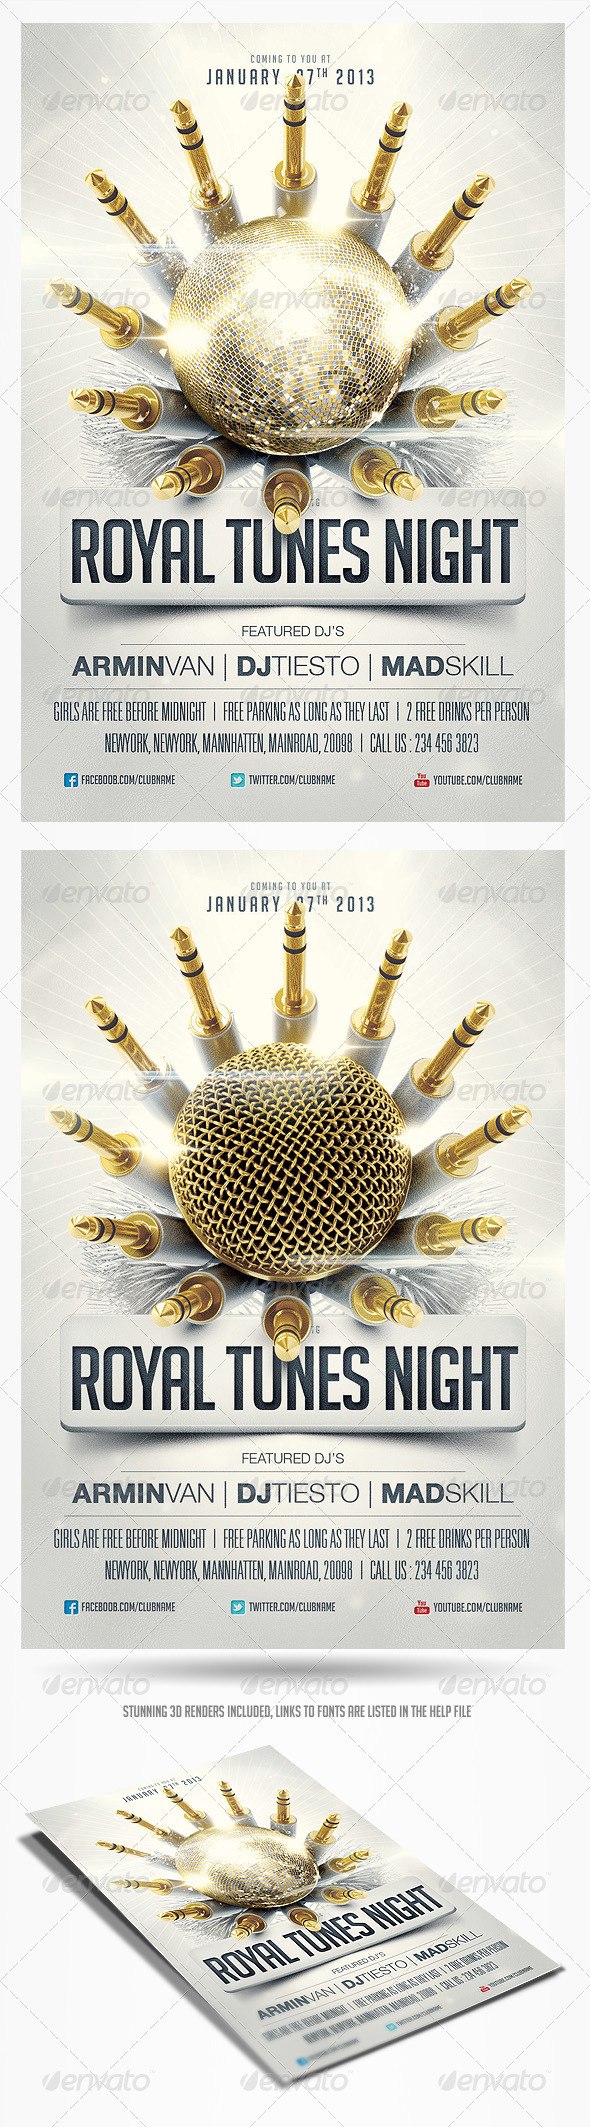 GraphicRiver Royal Tunes Flyer Template 3746570